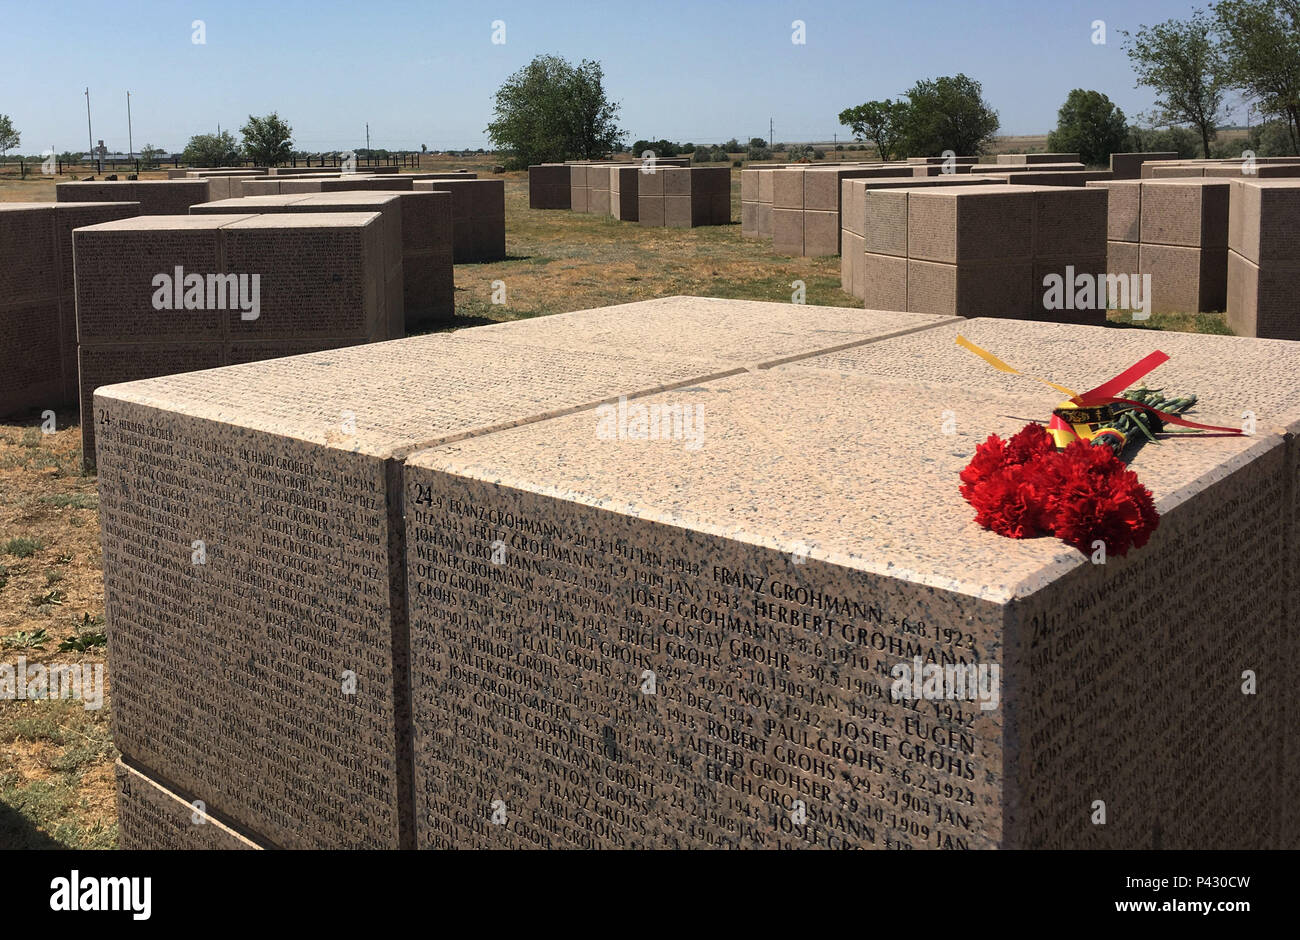 Rossoschka, Russia. 16th June, 2018. Flowers are lying on a memorial stone for fallen Germans in the military cemetery Rossoschka. Here not only soldiers of the German Wehrmacht are buried, but also members of the Red Army. Only a narrow street separates today's opponents. The remote memorial commemorates one of the worst chapters in World War II: the Battle of Stalingrad. Credit: Martin Moravec/dpa/Alamy Live News - Stock Image